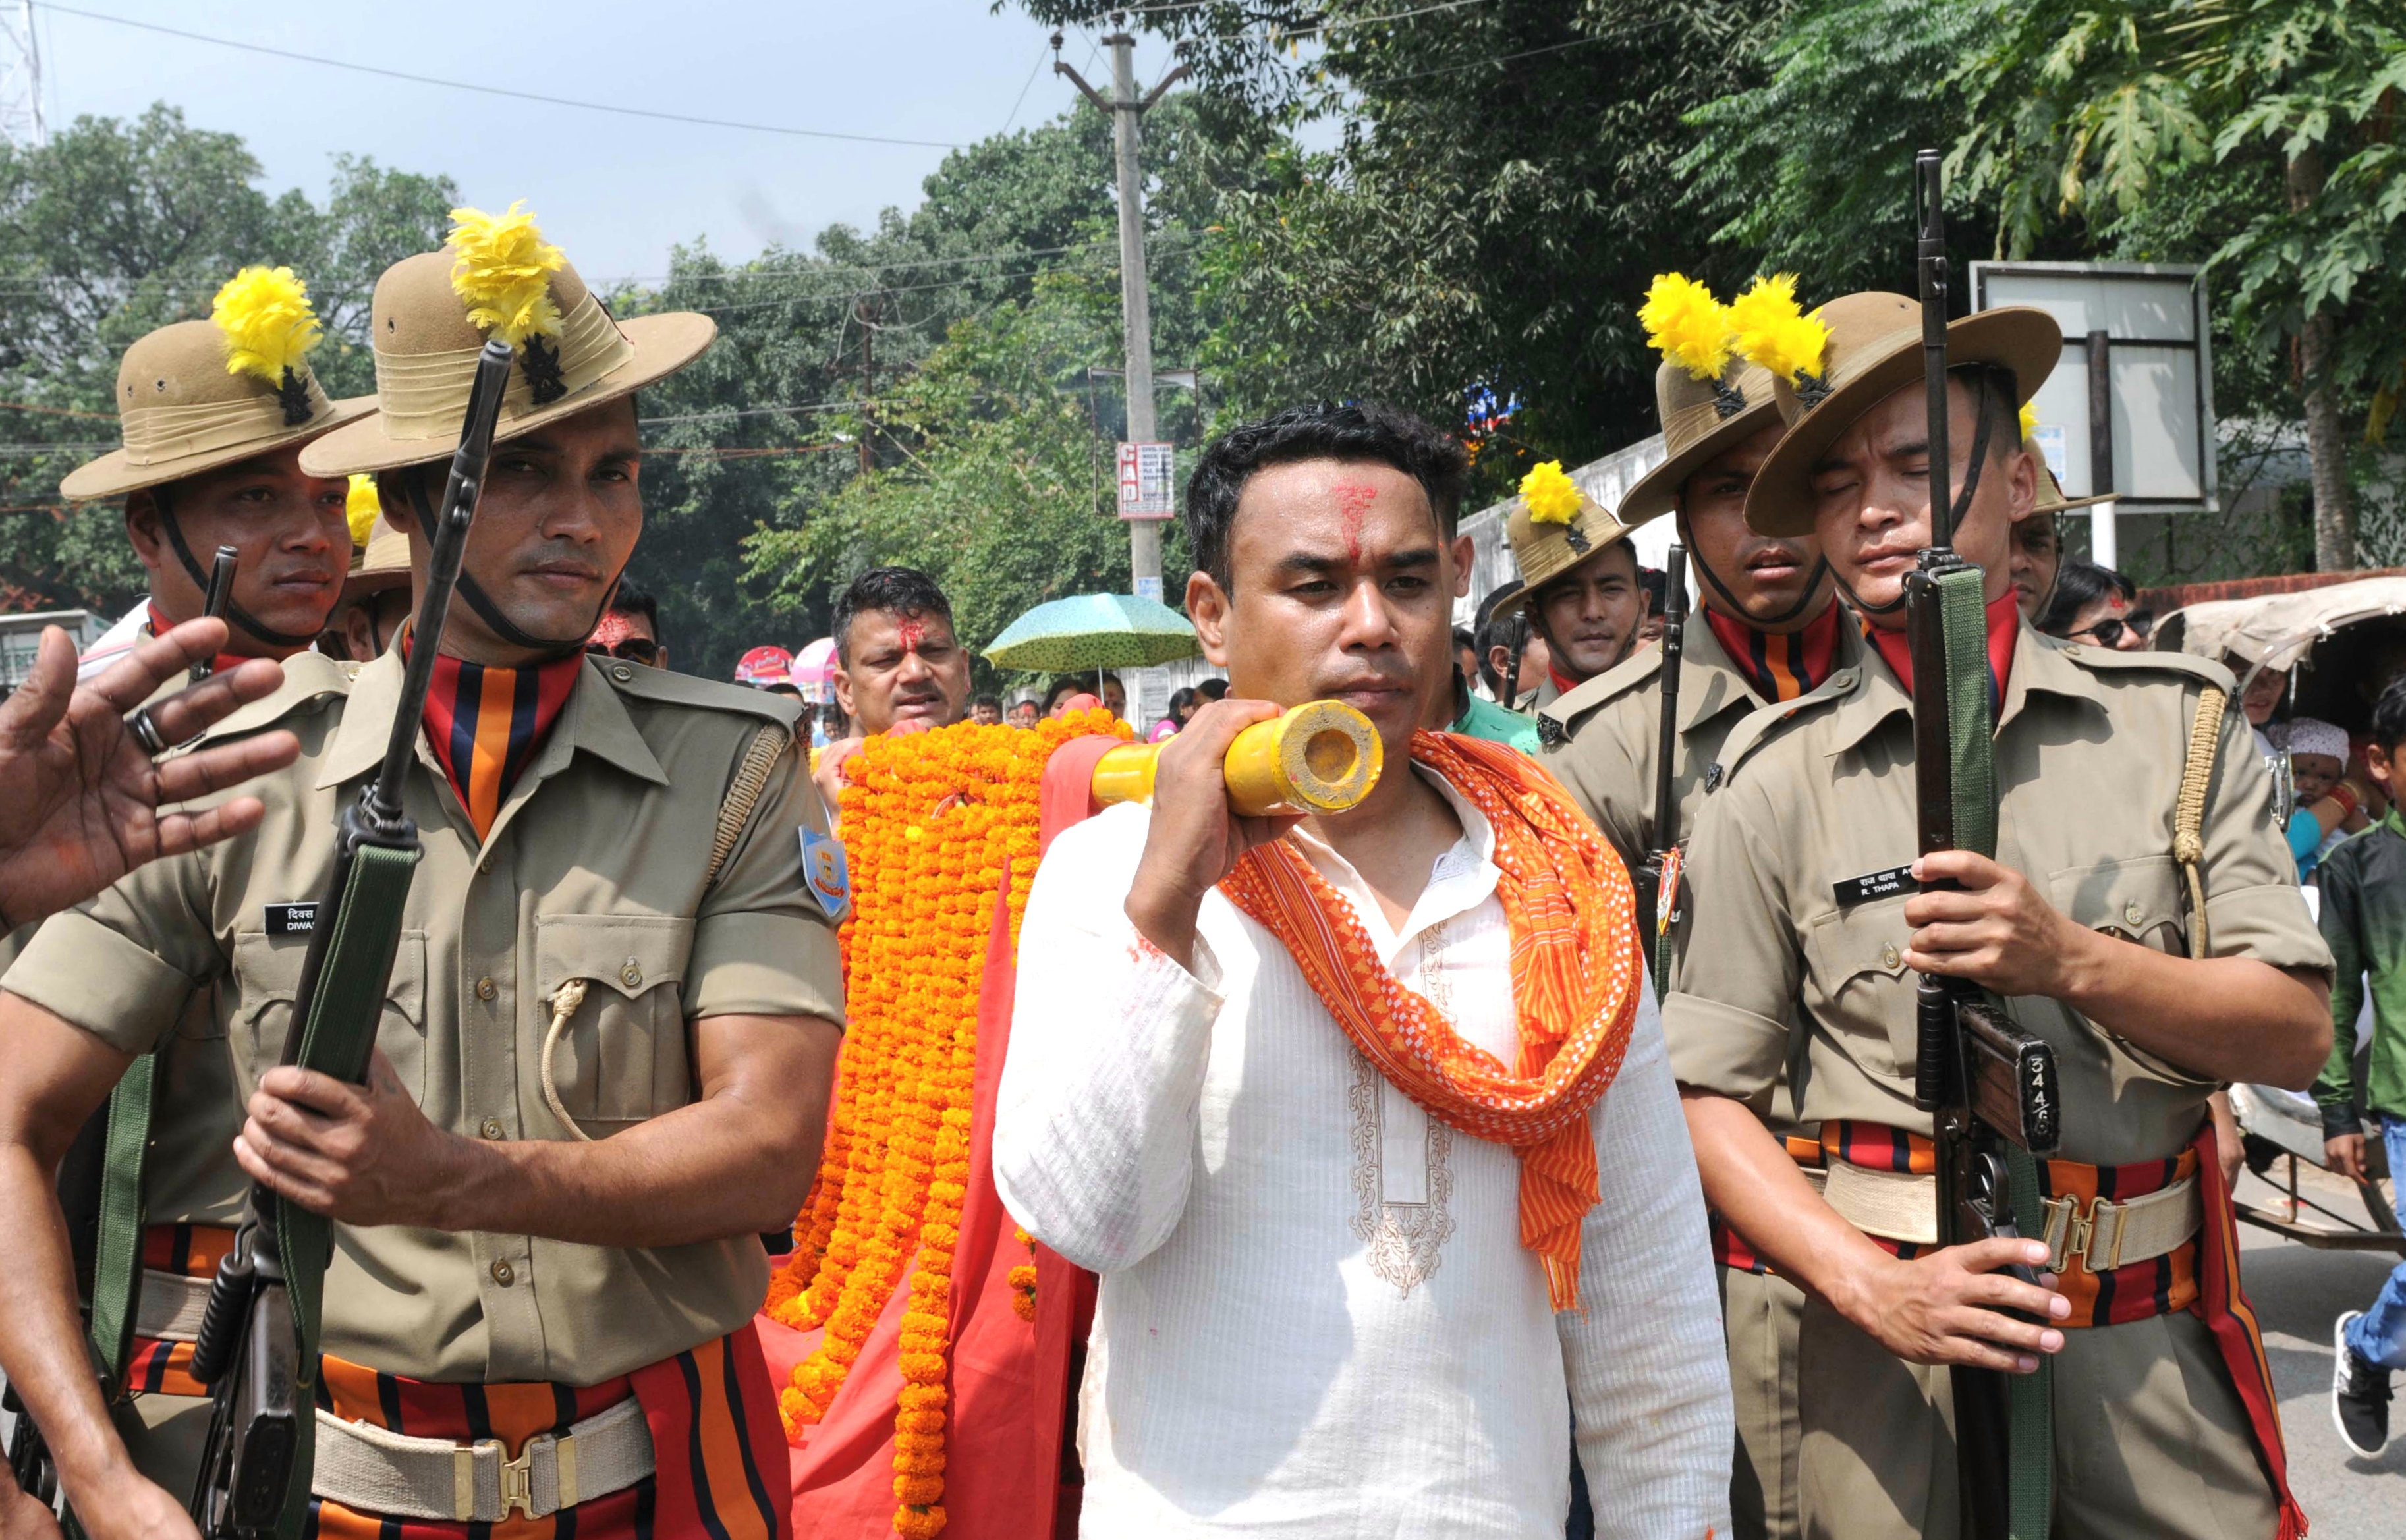 Mahasapatmi :: Jharkhand Armed Police forces participate in a Doli Yatra